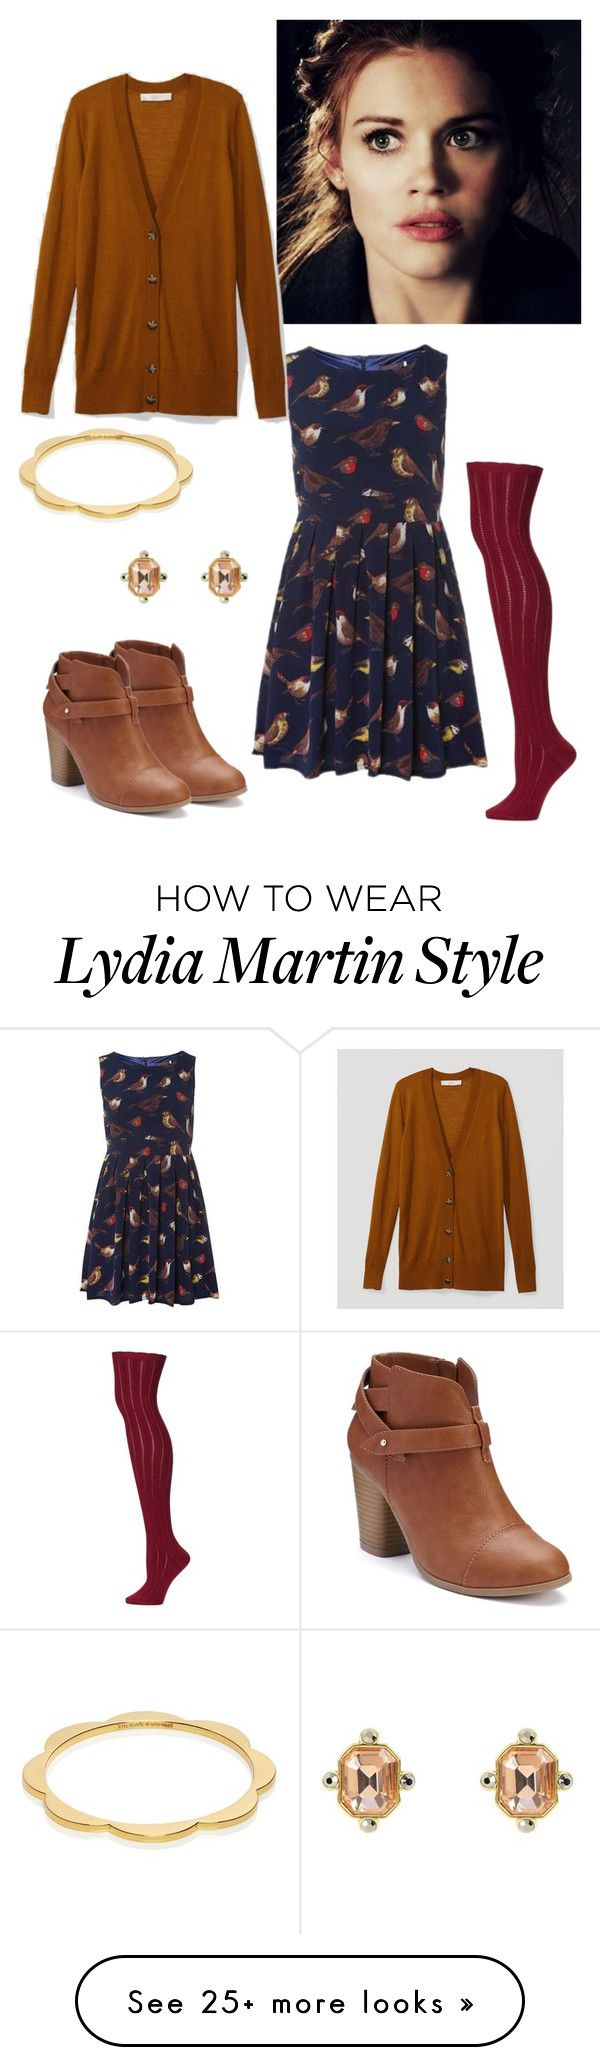 """Lydia Martin inspired"" by fashionista-diva-983 on Polyvore featuring Tenki, Free People, LOFT, LC Lauren Conrad, Kate Spade and Juicy Couture"